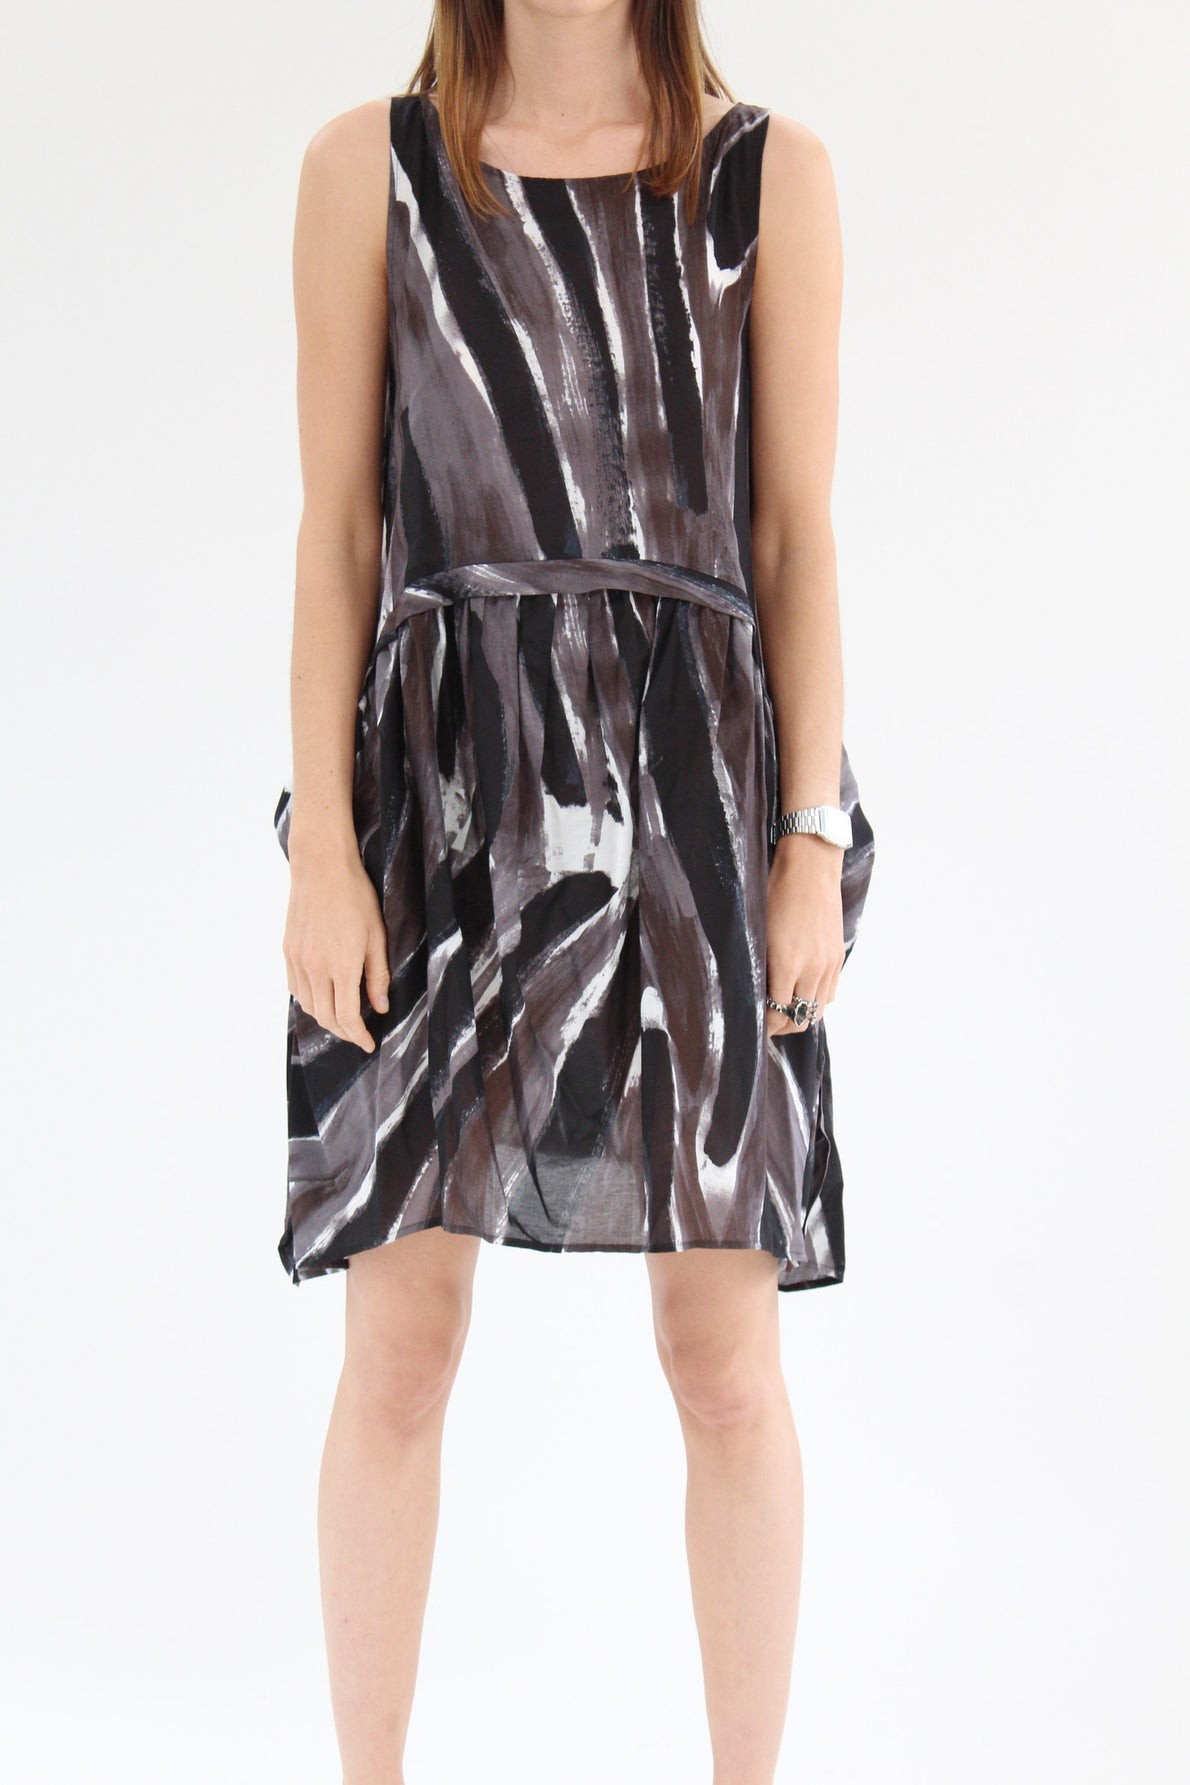 Rachel Comey Popcorn Dress Mink Canter Stripe / BEKLINA